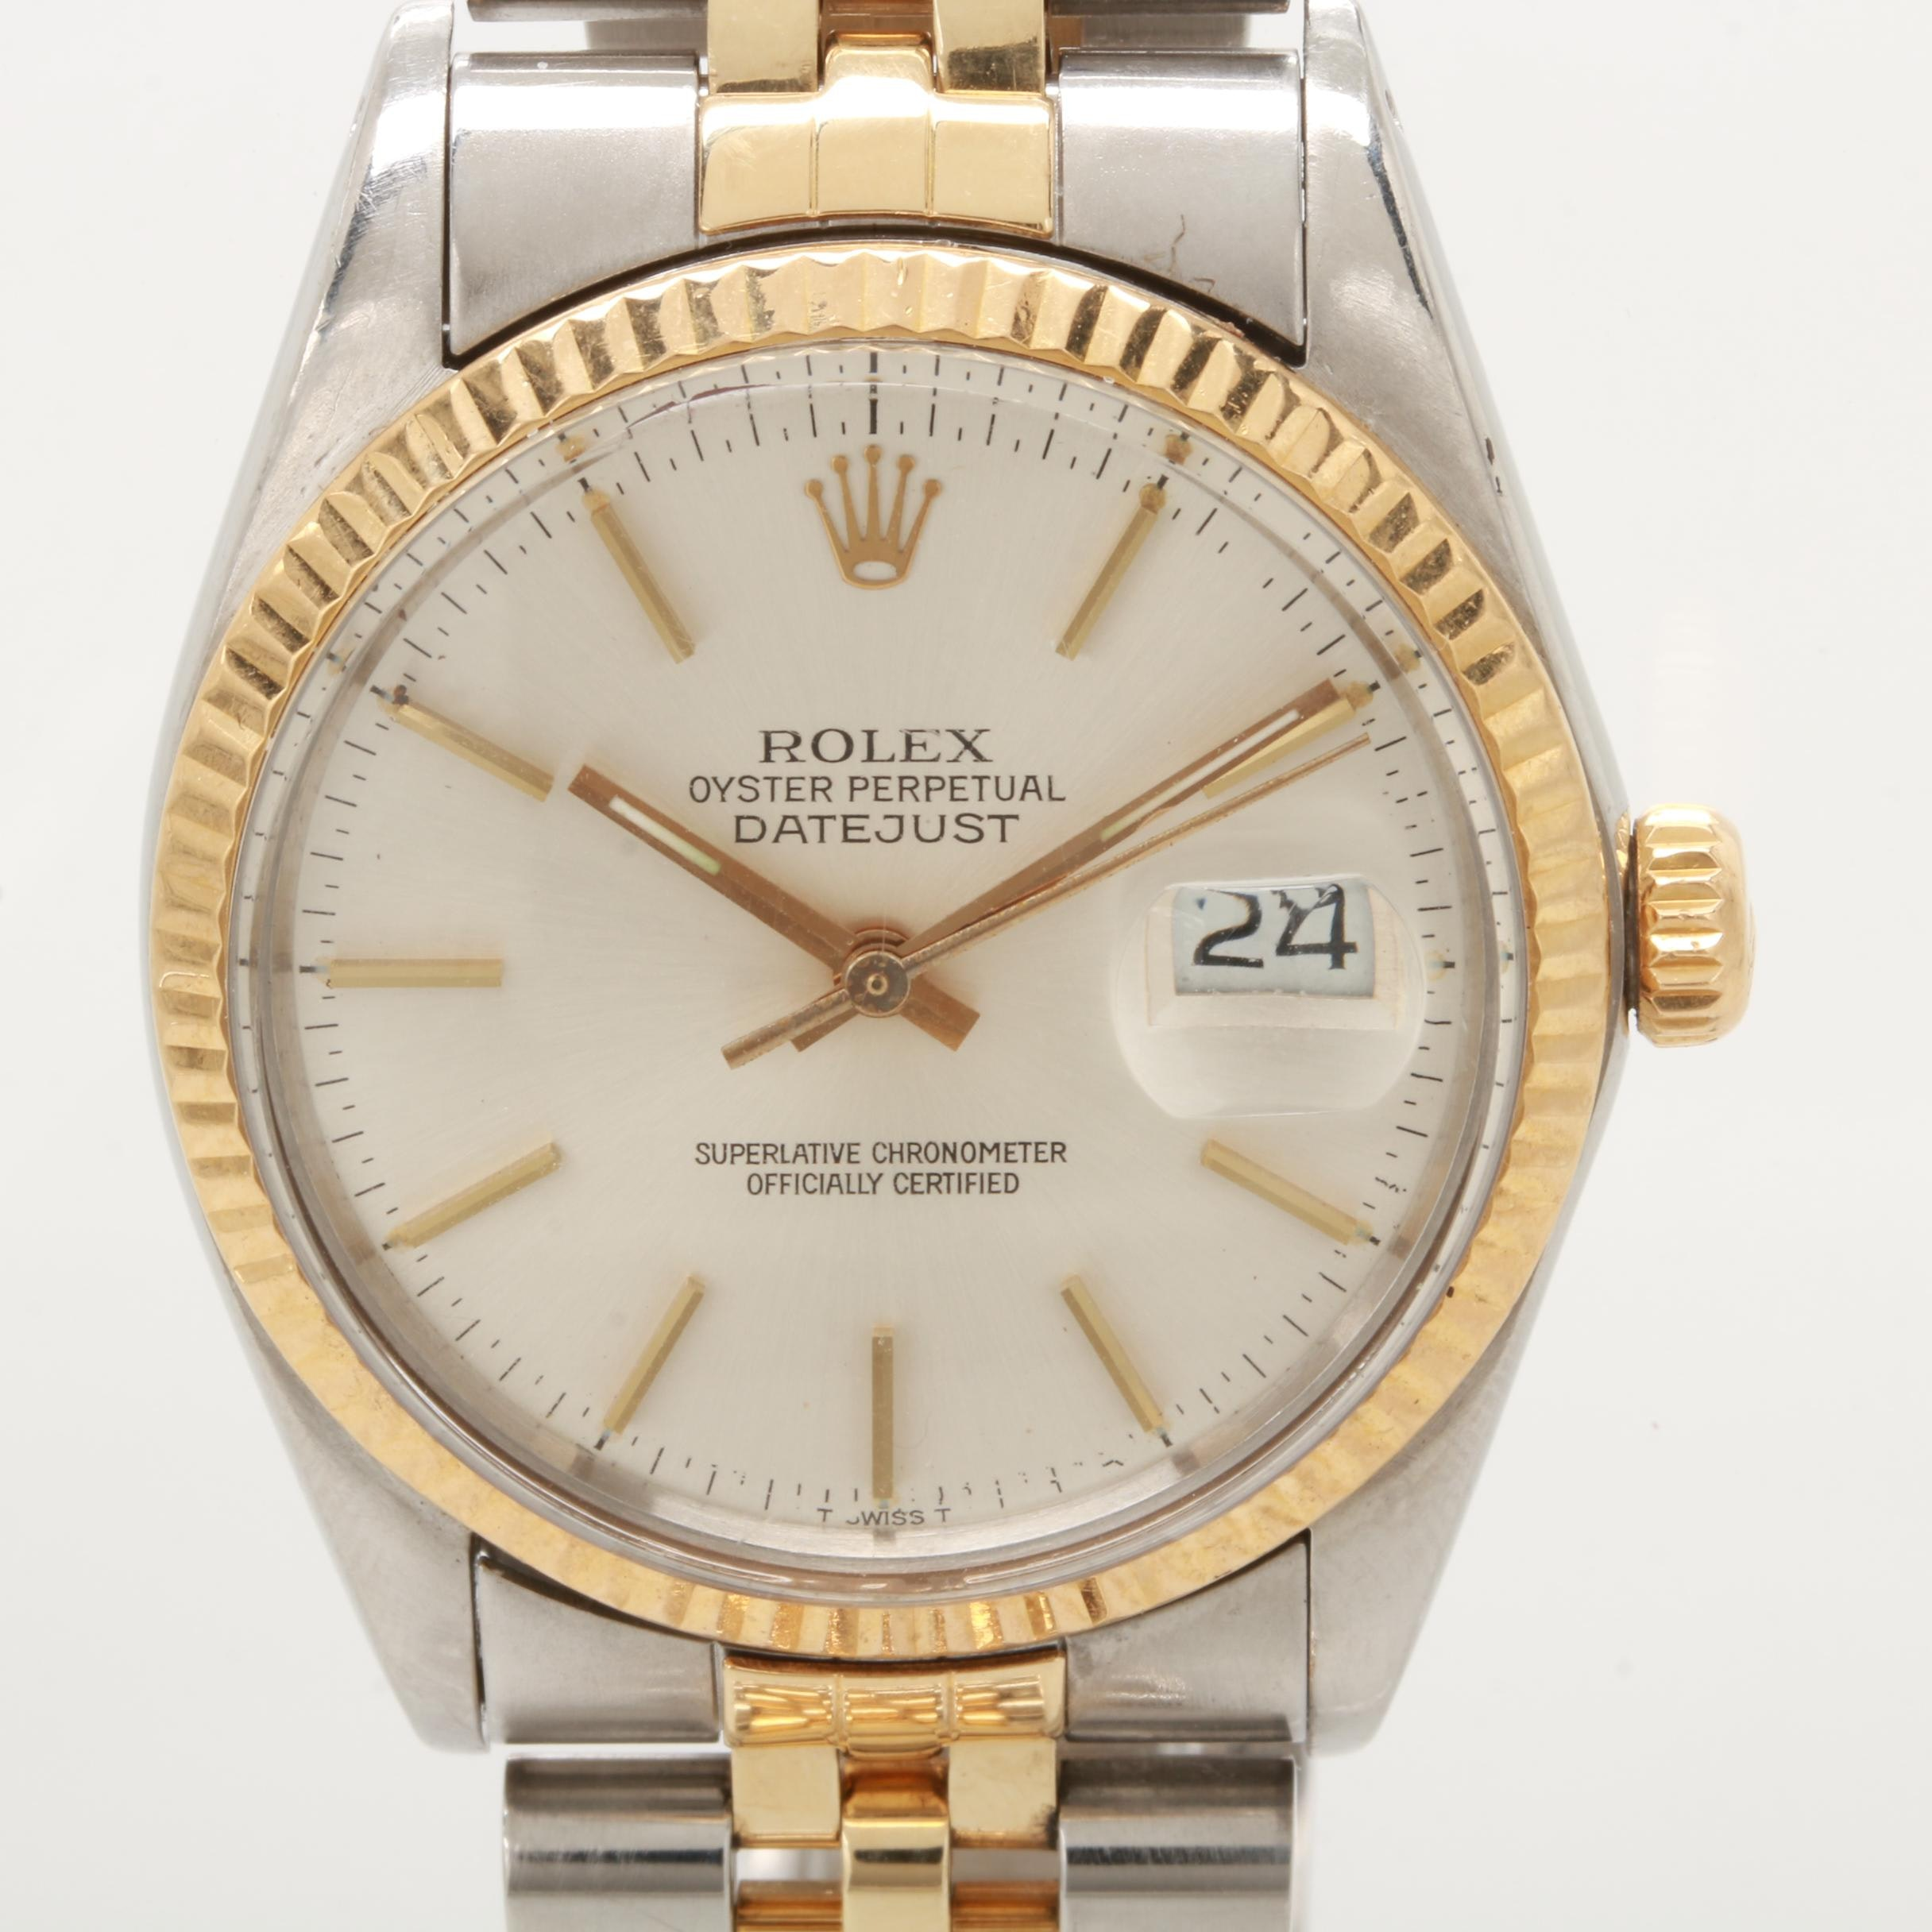 Vintage Rolex 18K Yellow Gold and Stainless Steel Wristwatch